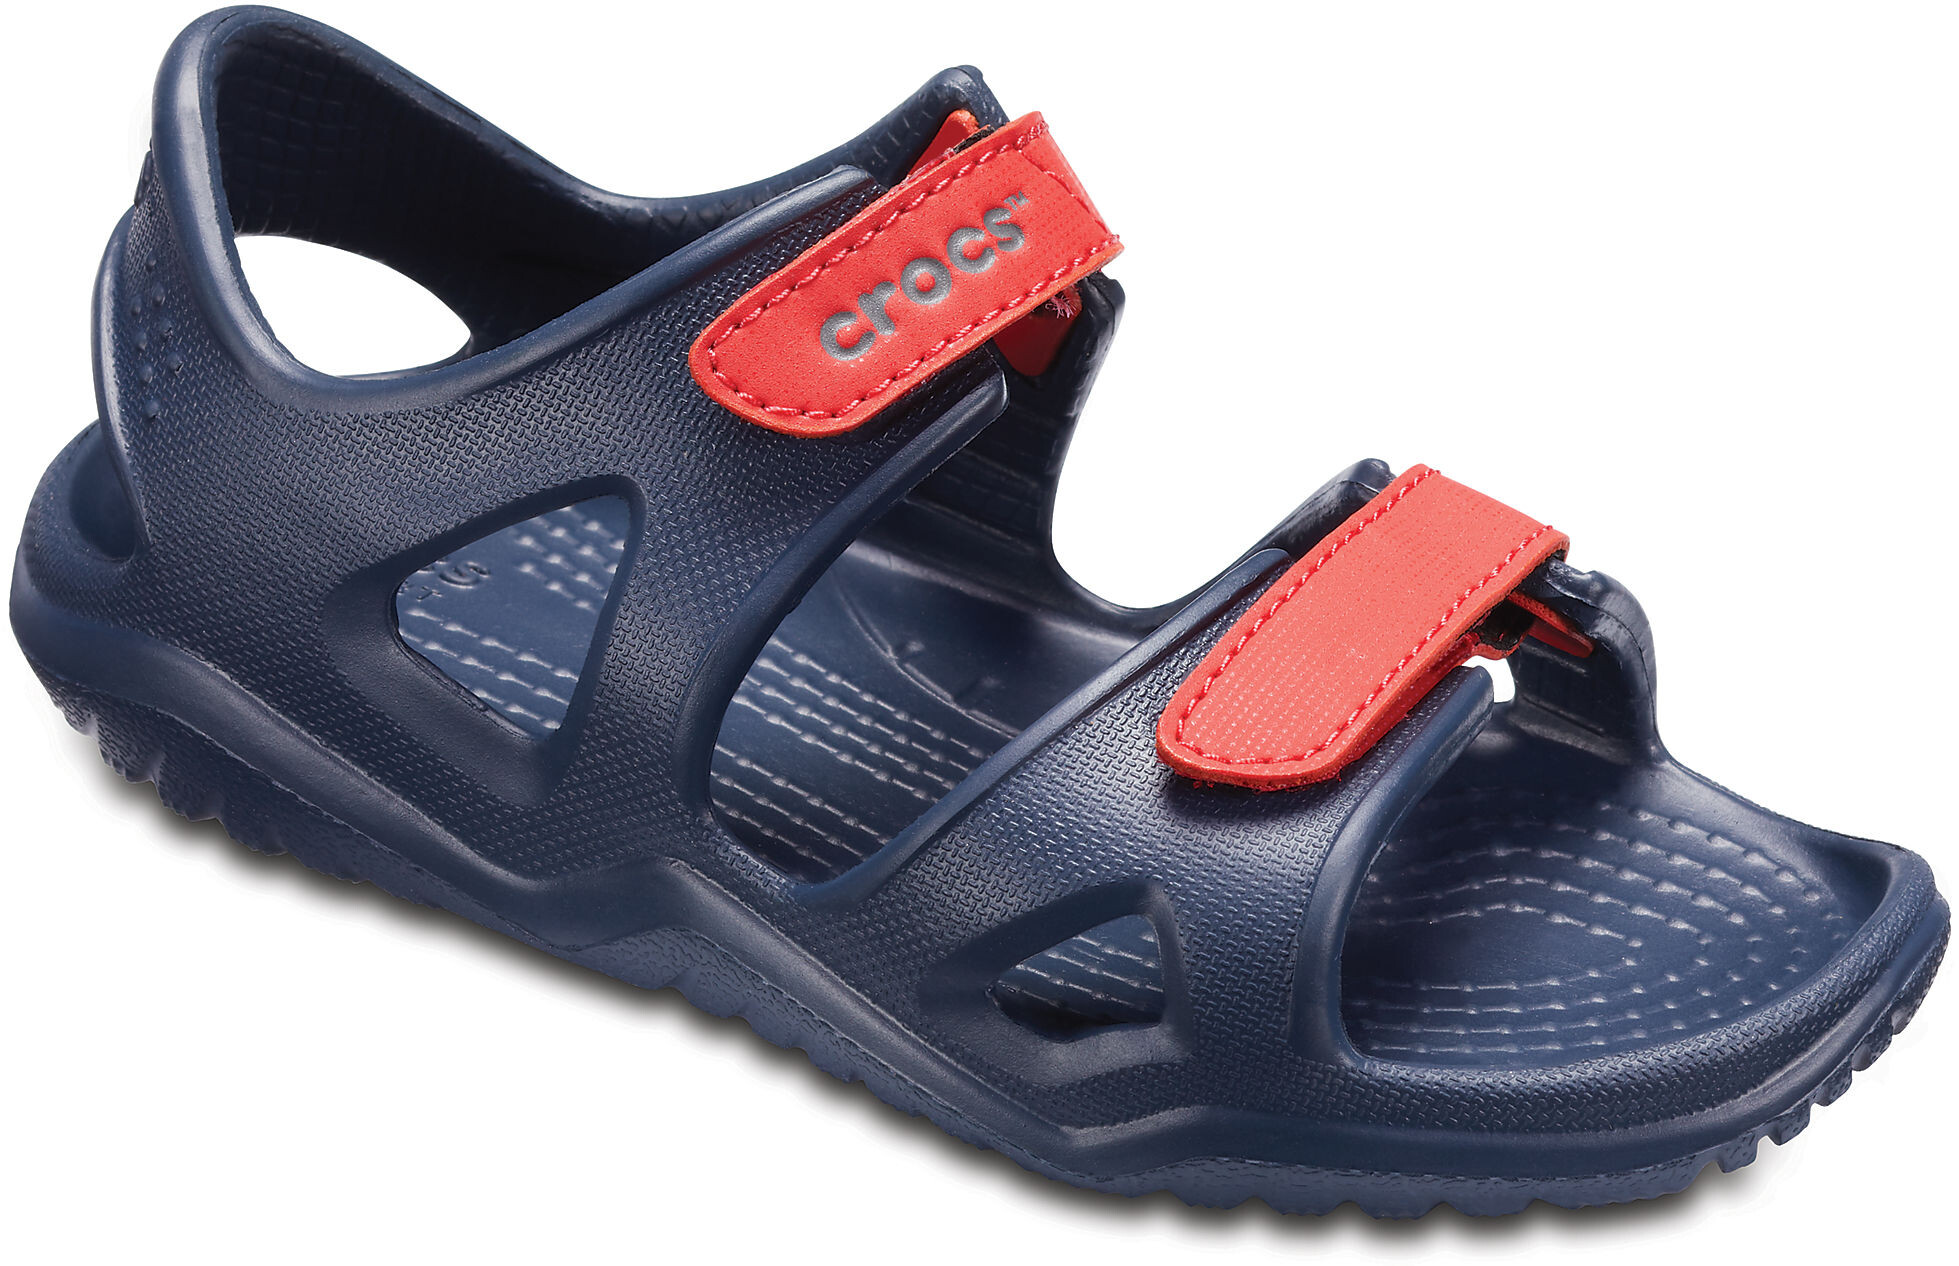 Bout Ouvert Mixte Enfant Crocs Swiftwater River Sandal K